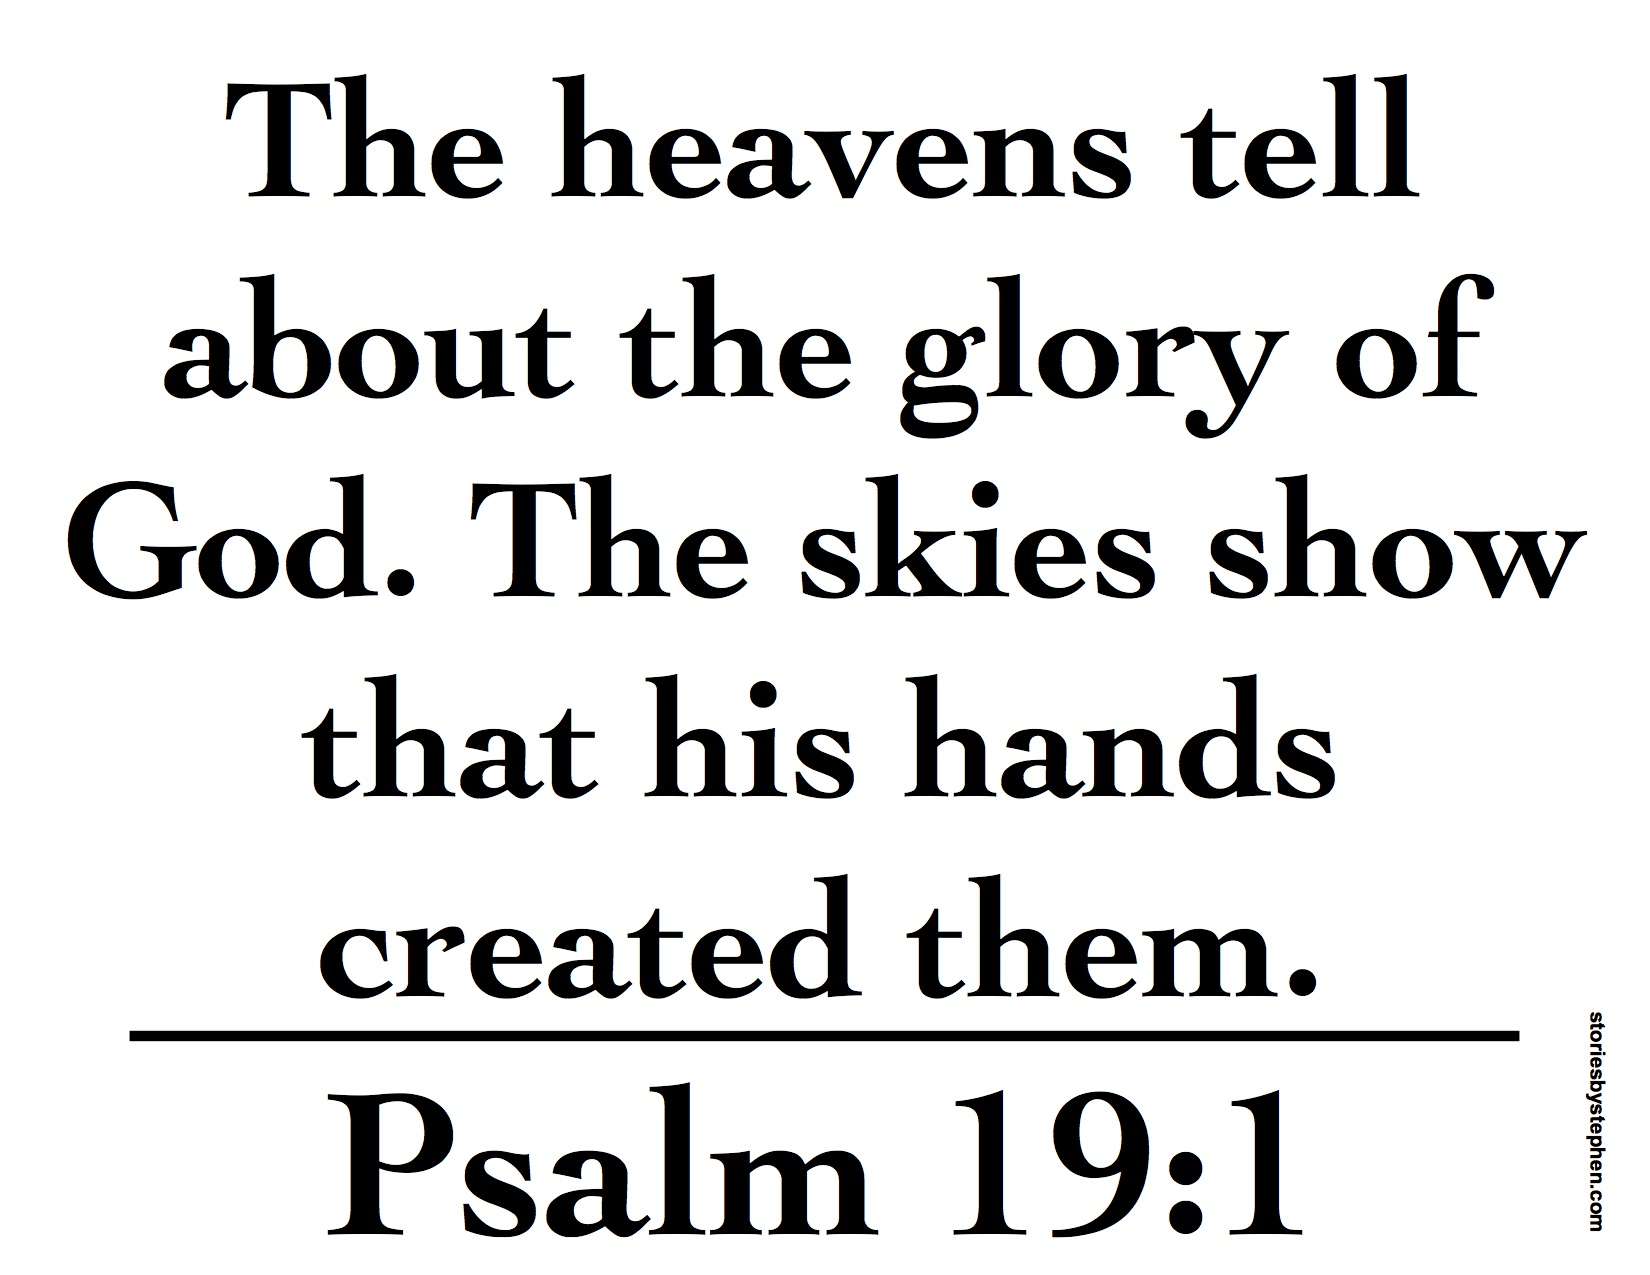 Psalm 191 Memory Verse Printables Stories By Stephen